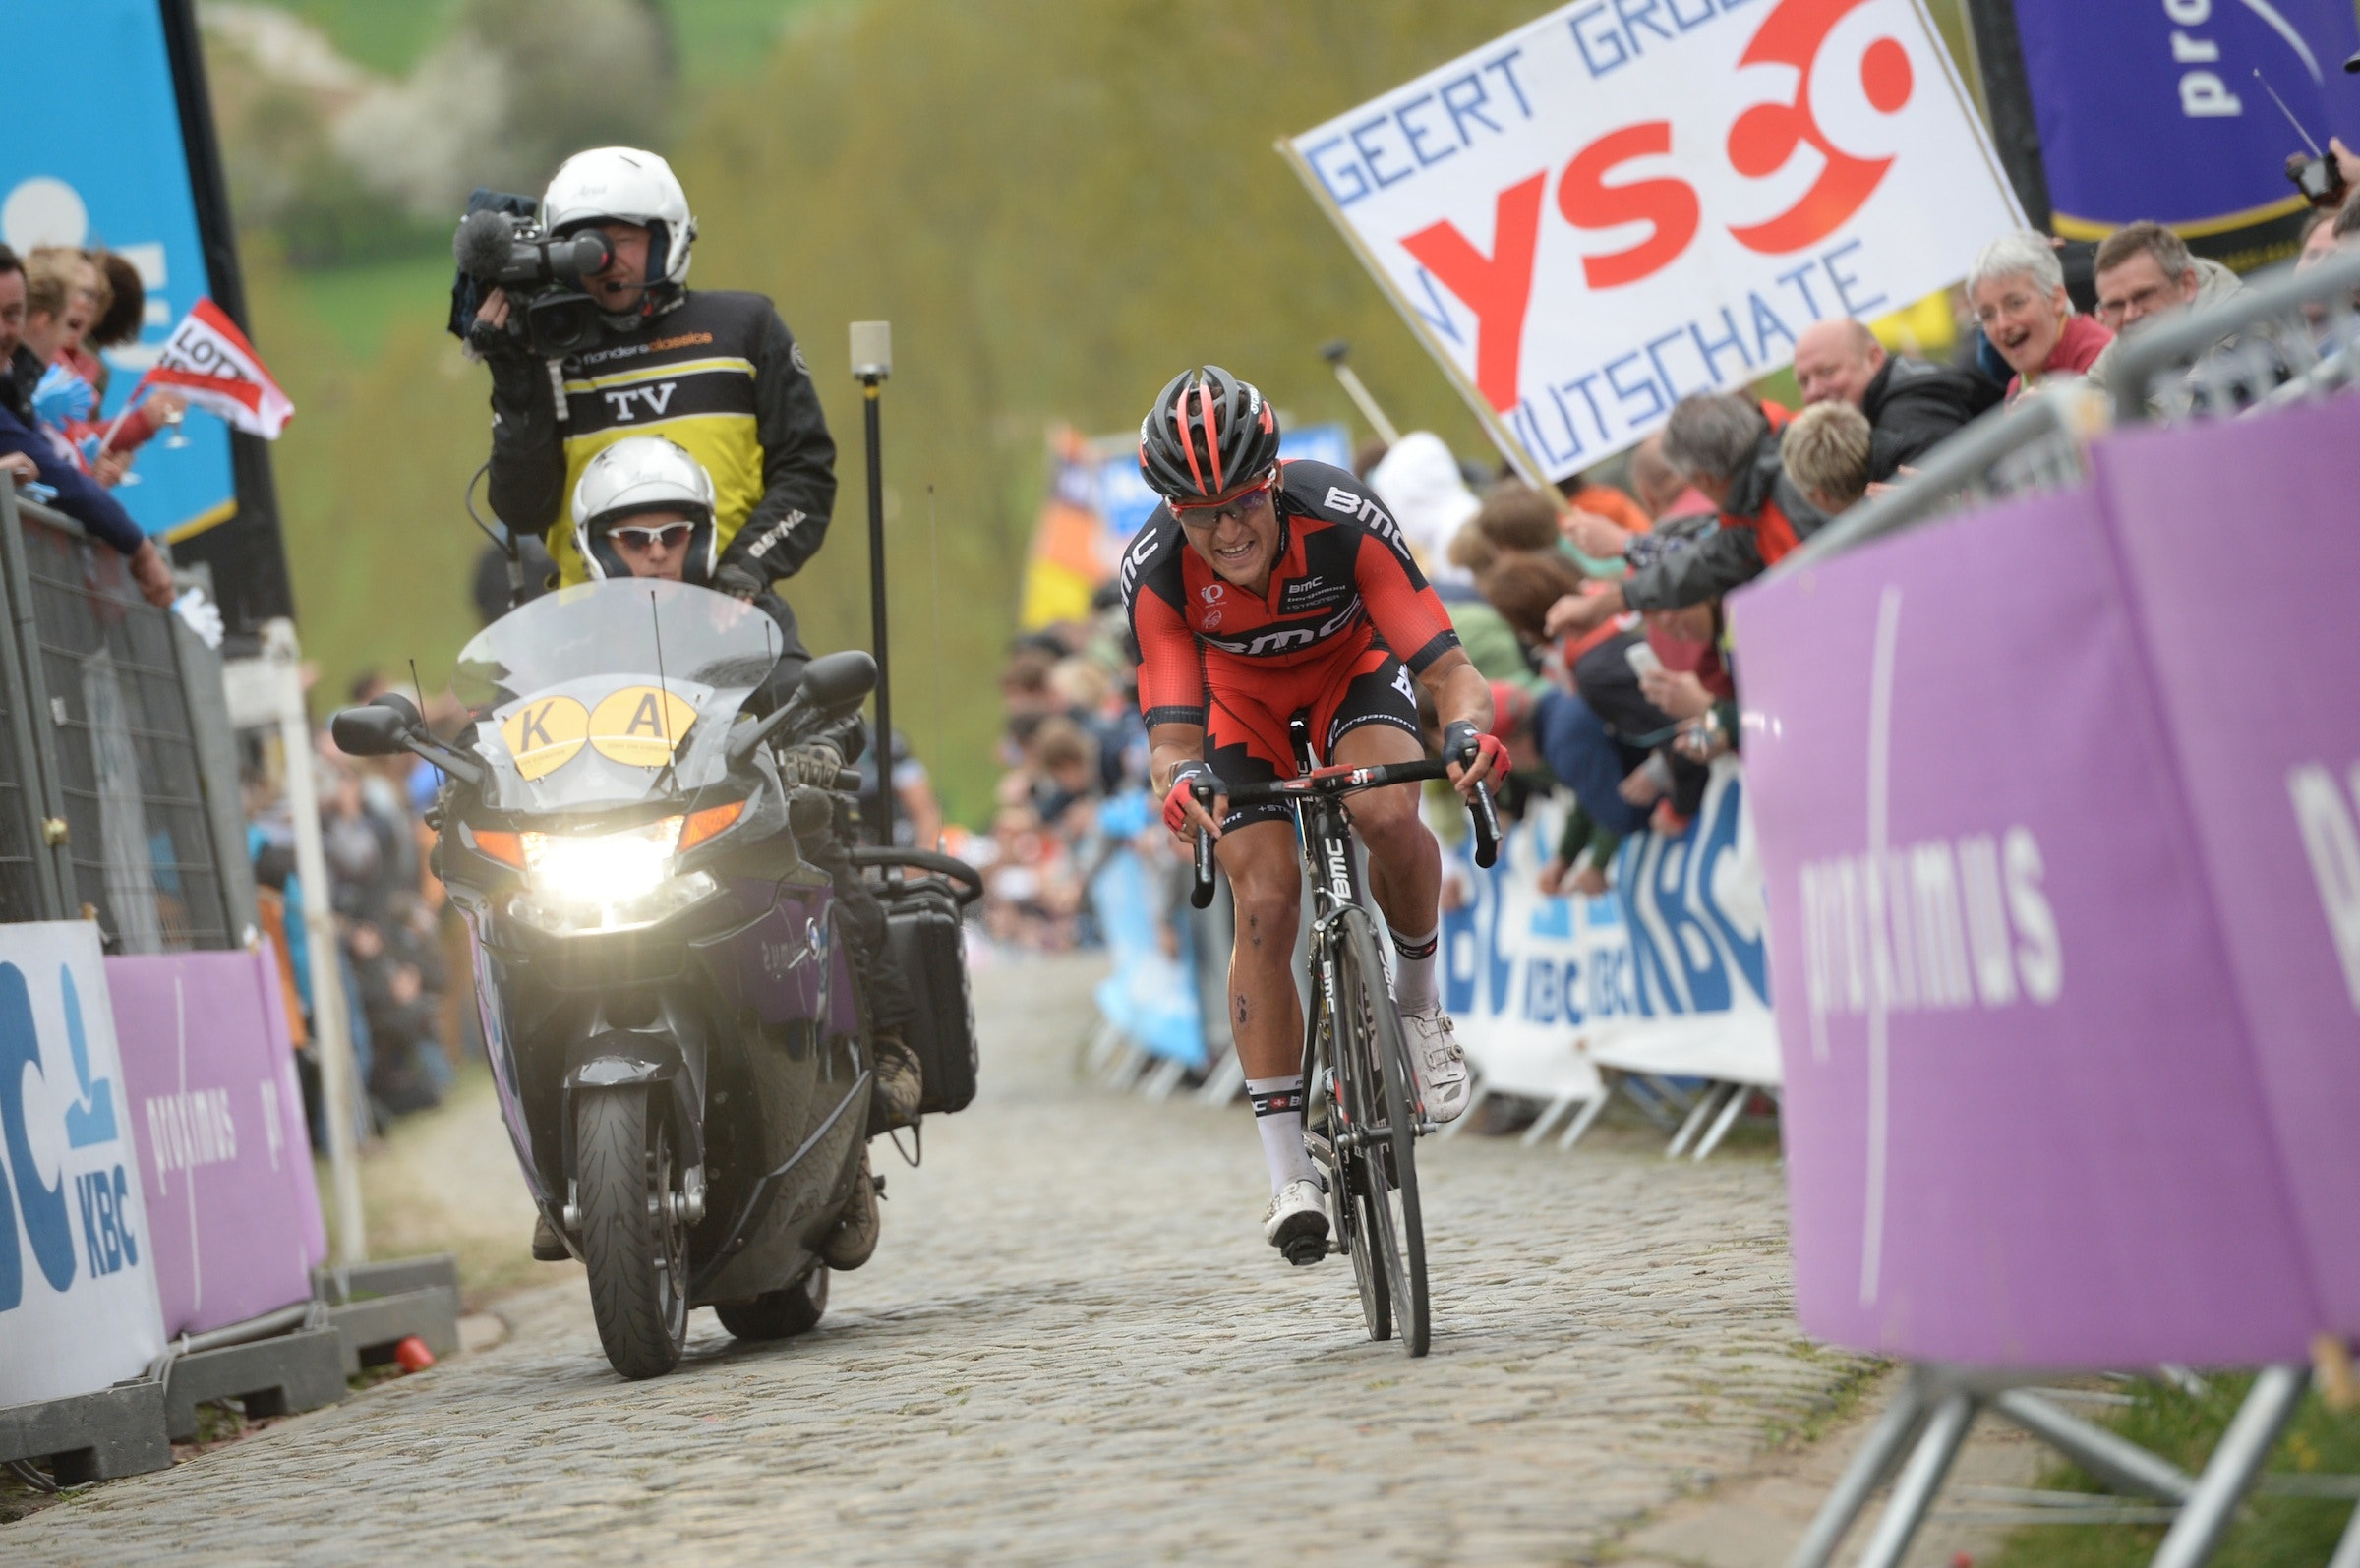 Greg Van Avermaet, Tour of Flanders 2014, Kwaremont, pic: ©Sirotti